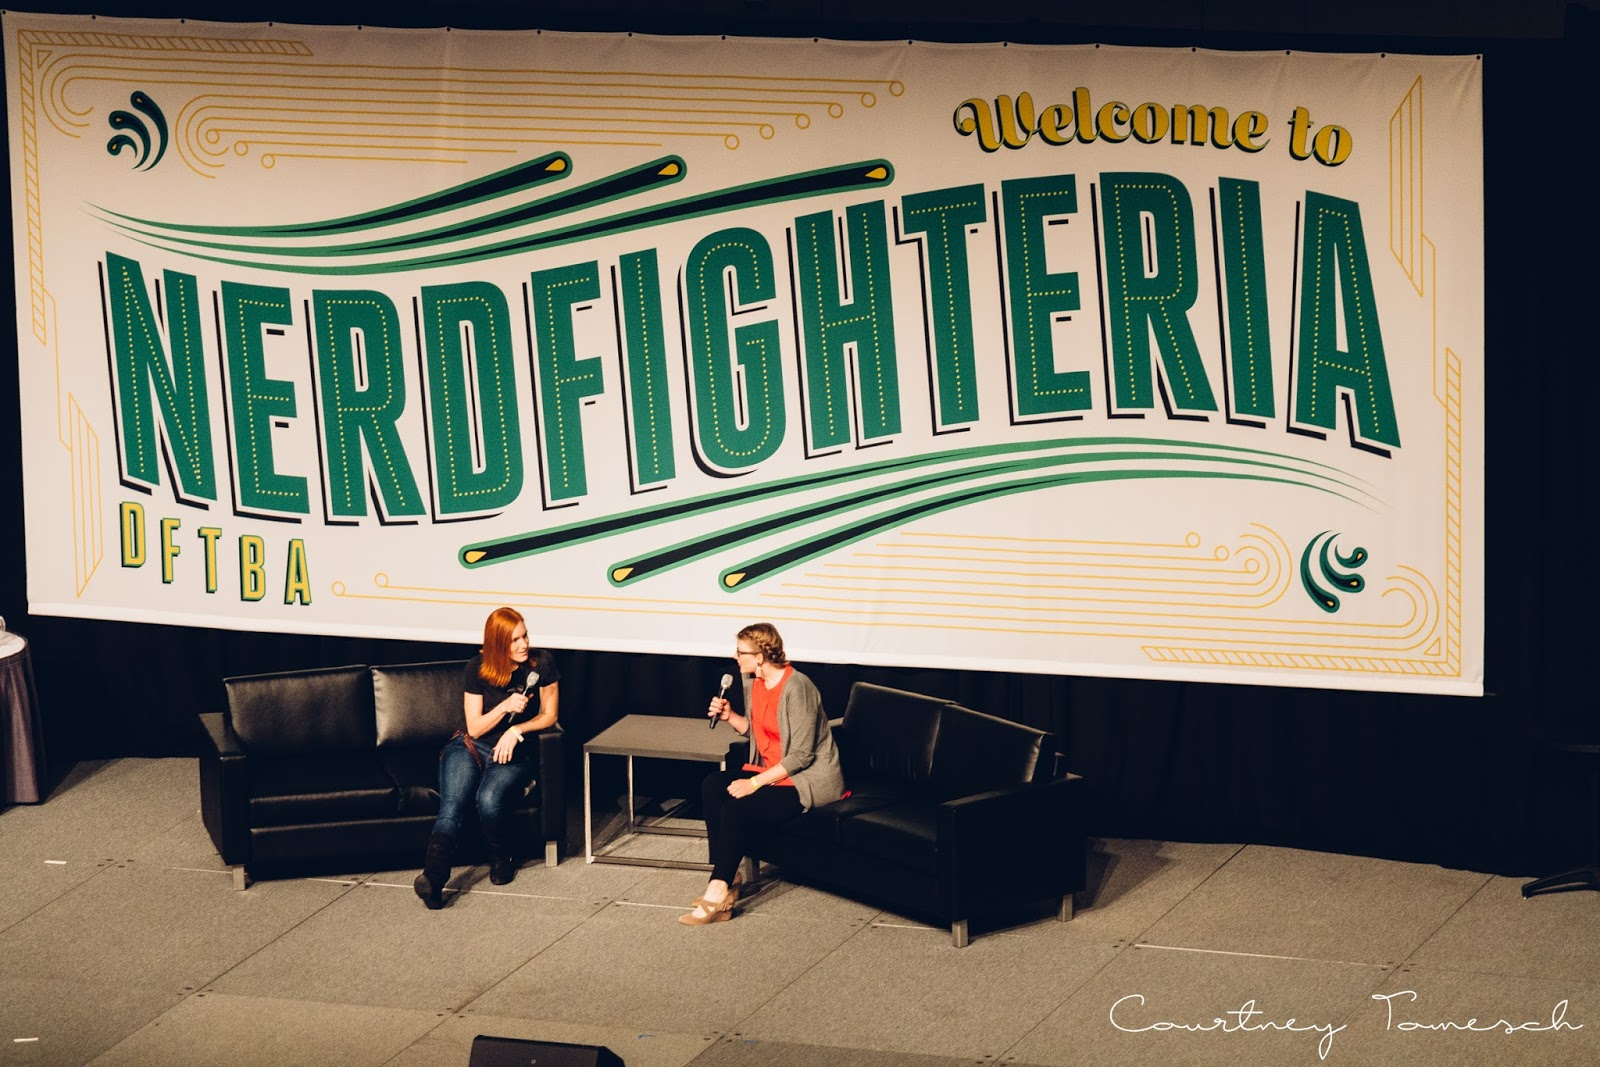 Courtney Tomesch NerdCon Nerdfighteria Boston